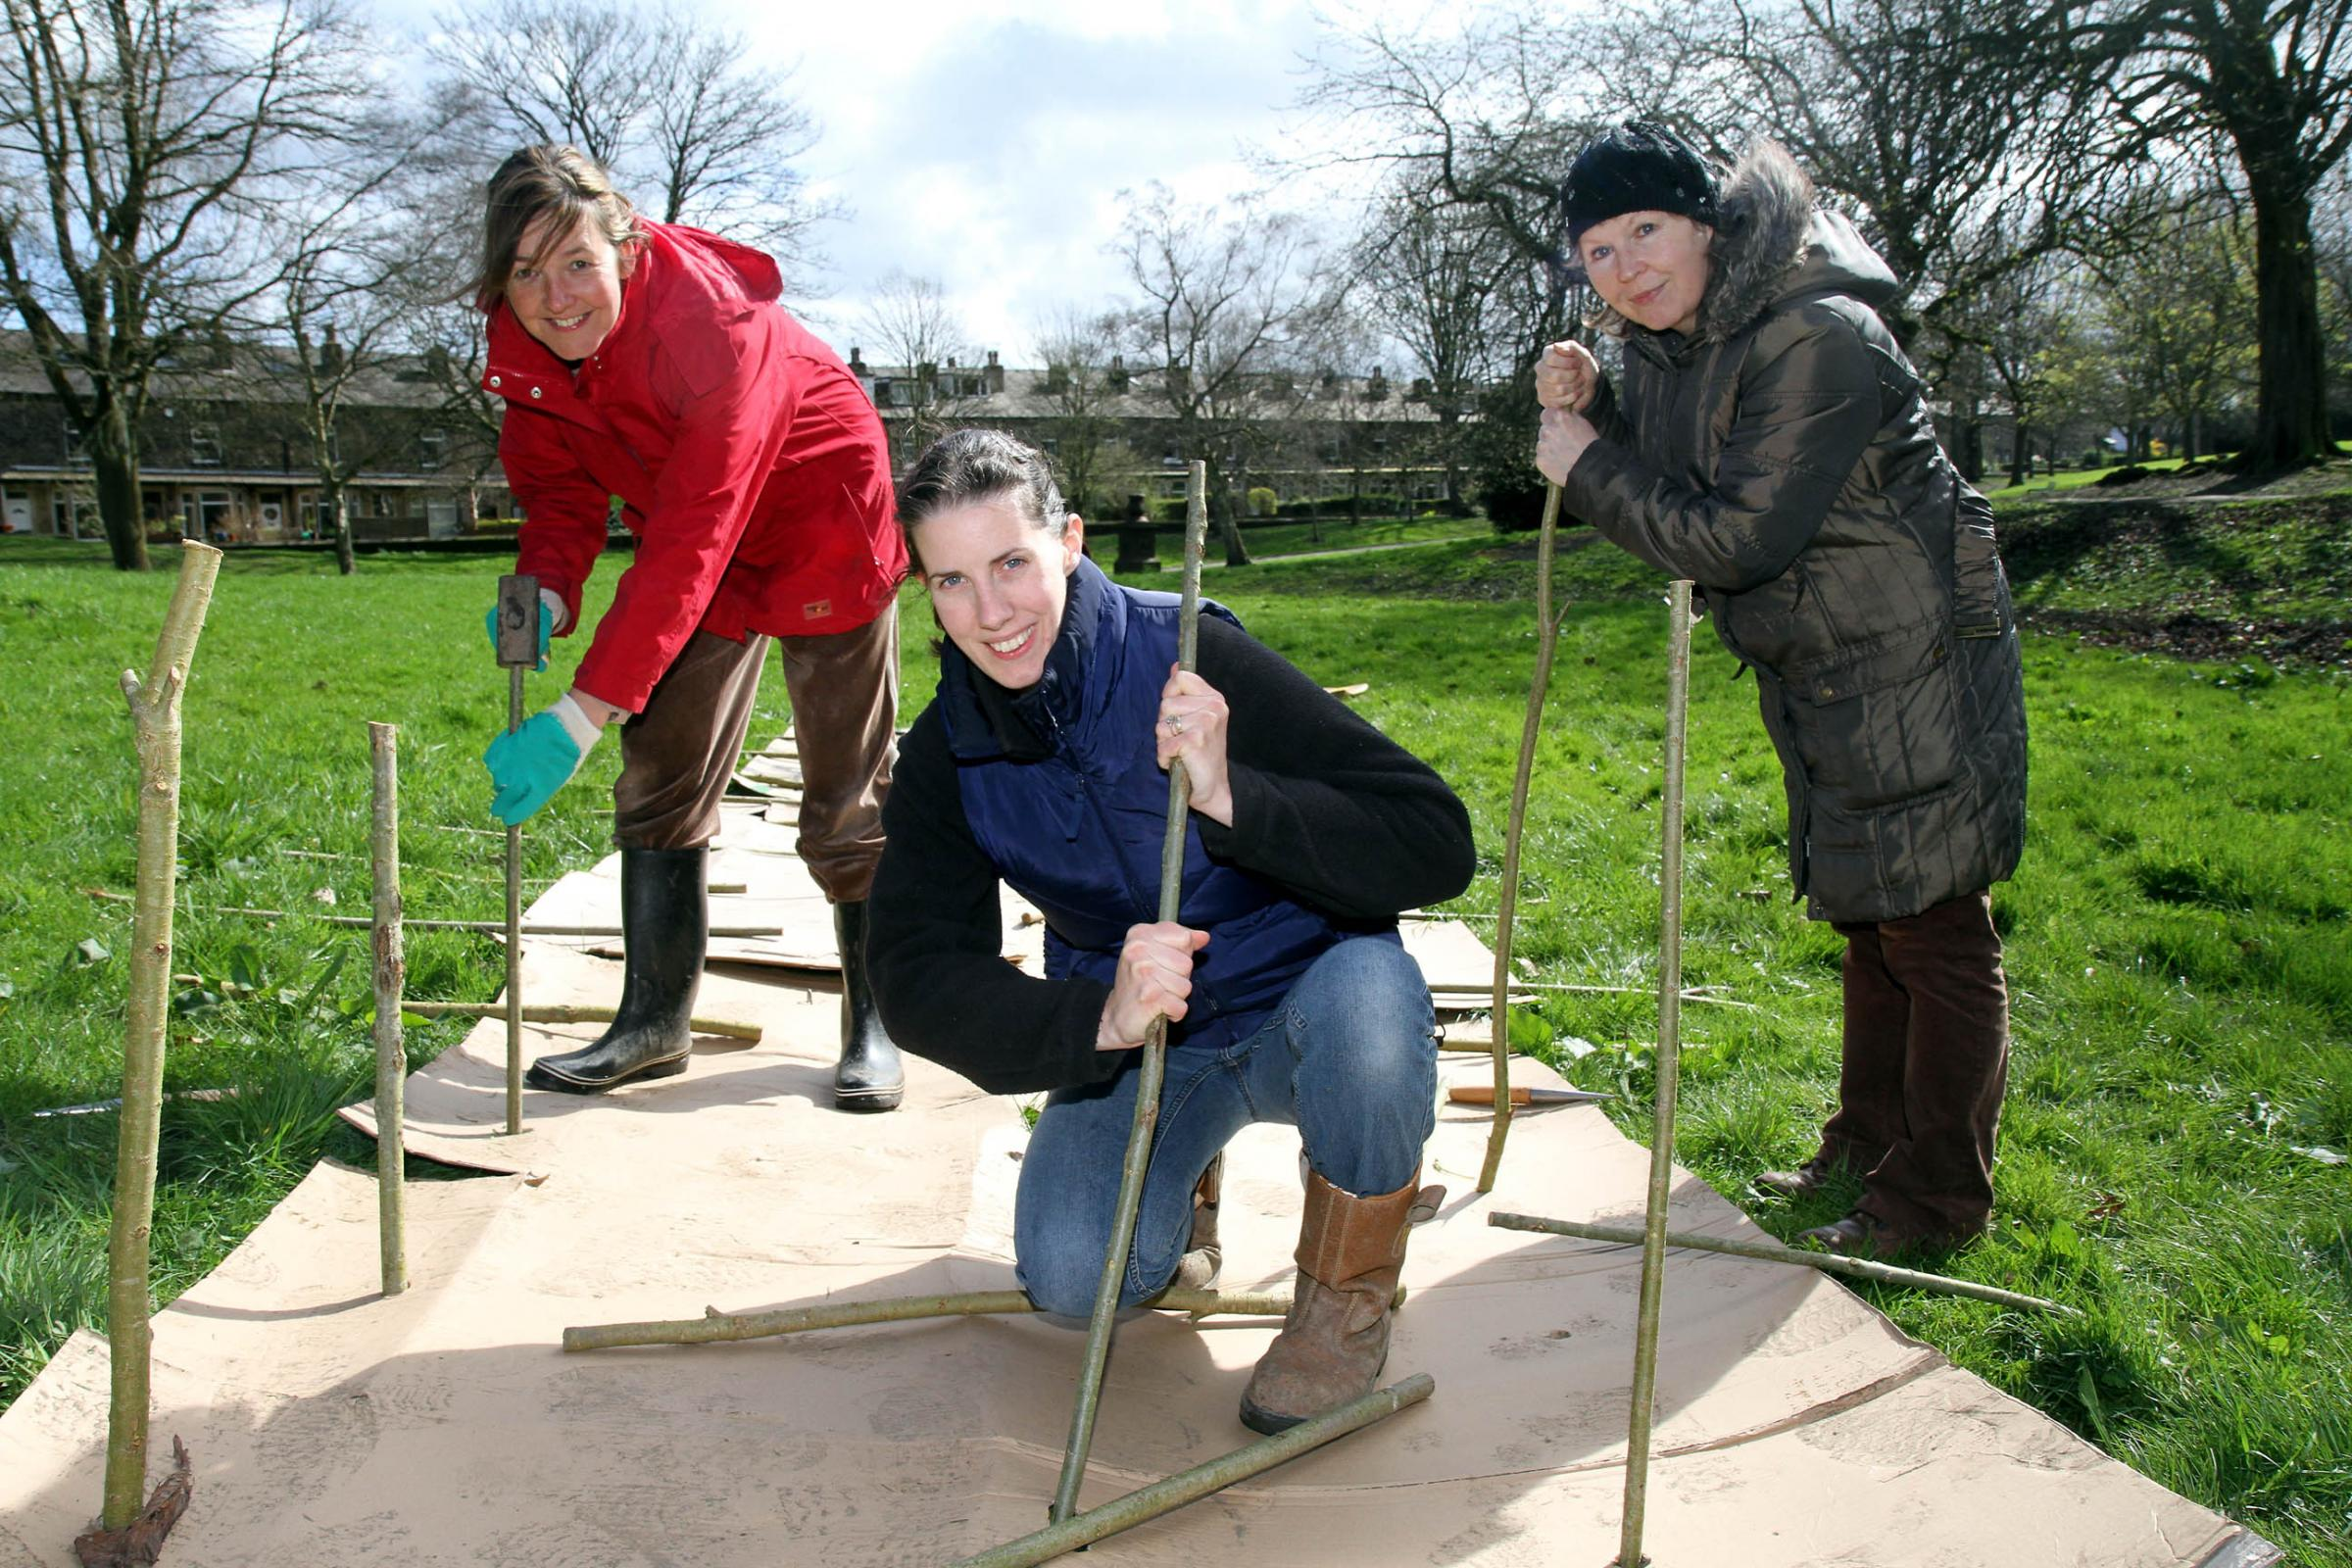 Joining in the willow planting at Keighley's Lund Park are (from left) Jo Horrox, Pippa Chapman and Linda O'Connor